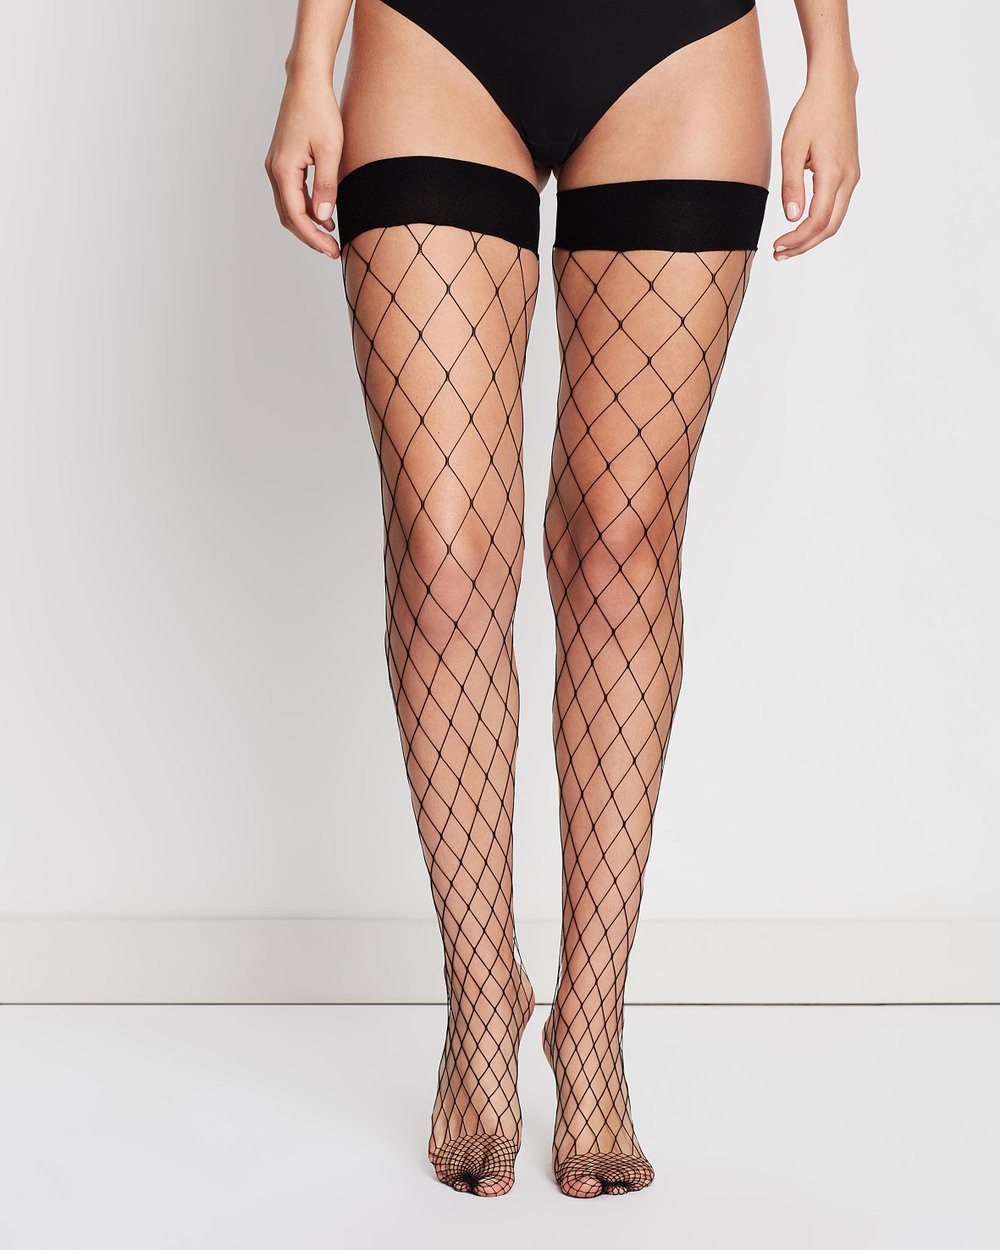 dbdbb16a4d1 Large Fishnet Stockings by Ann Summers Online